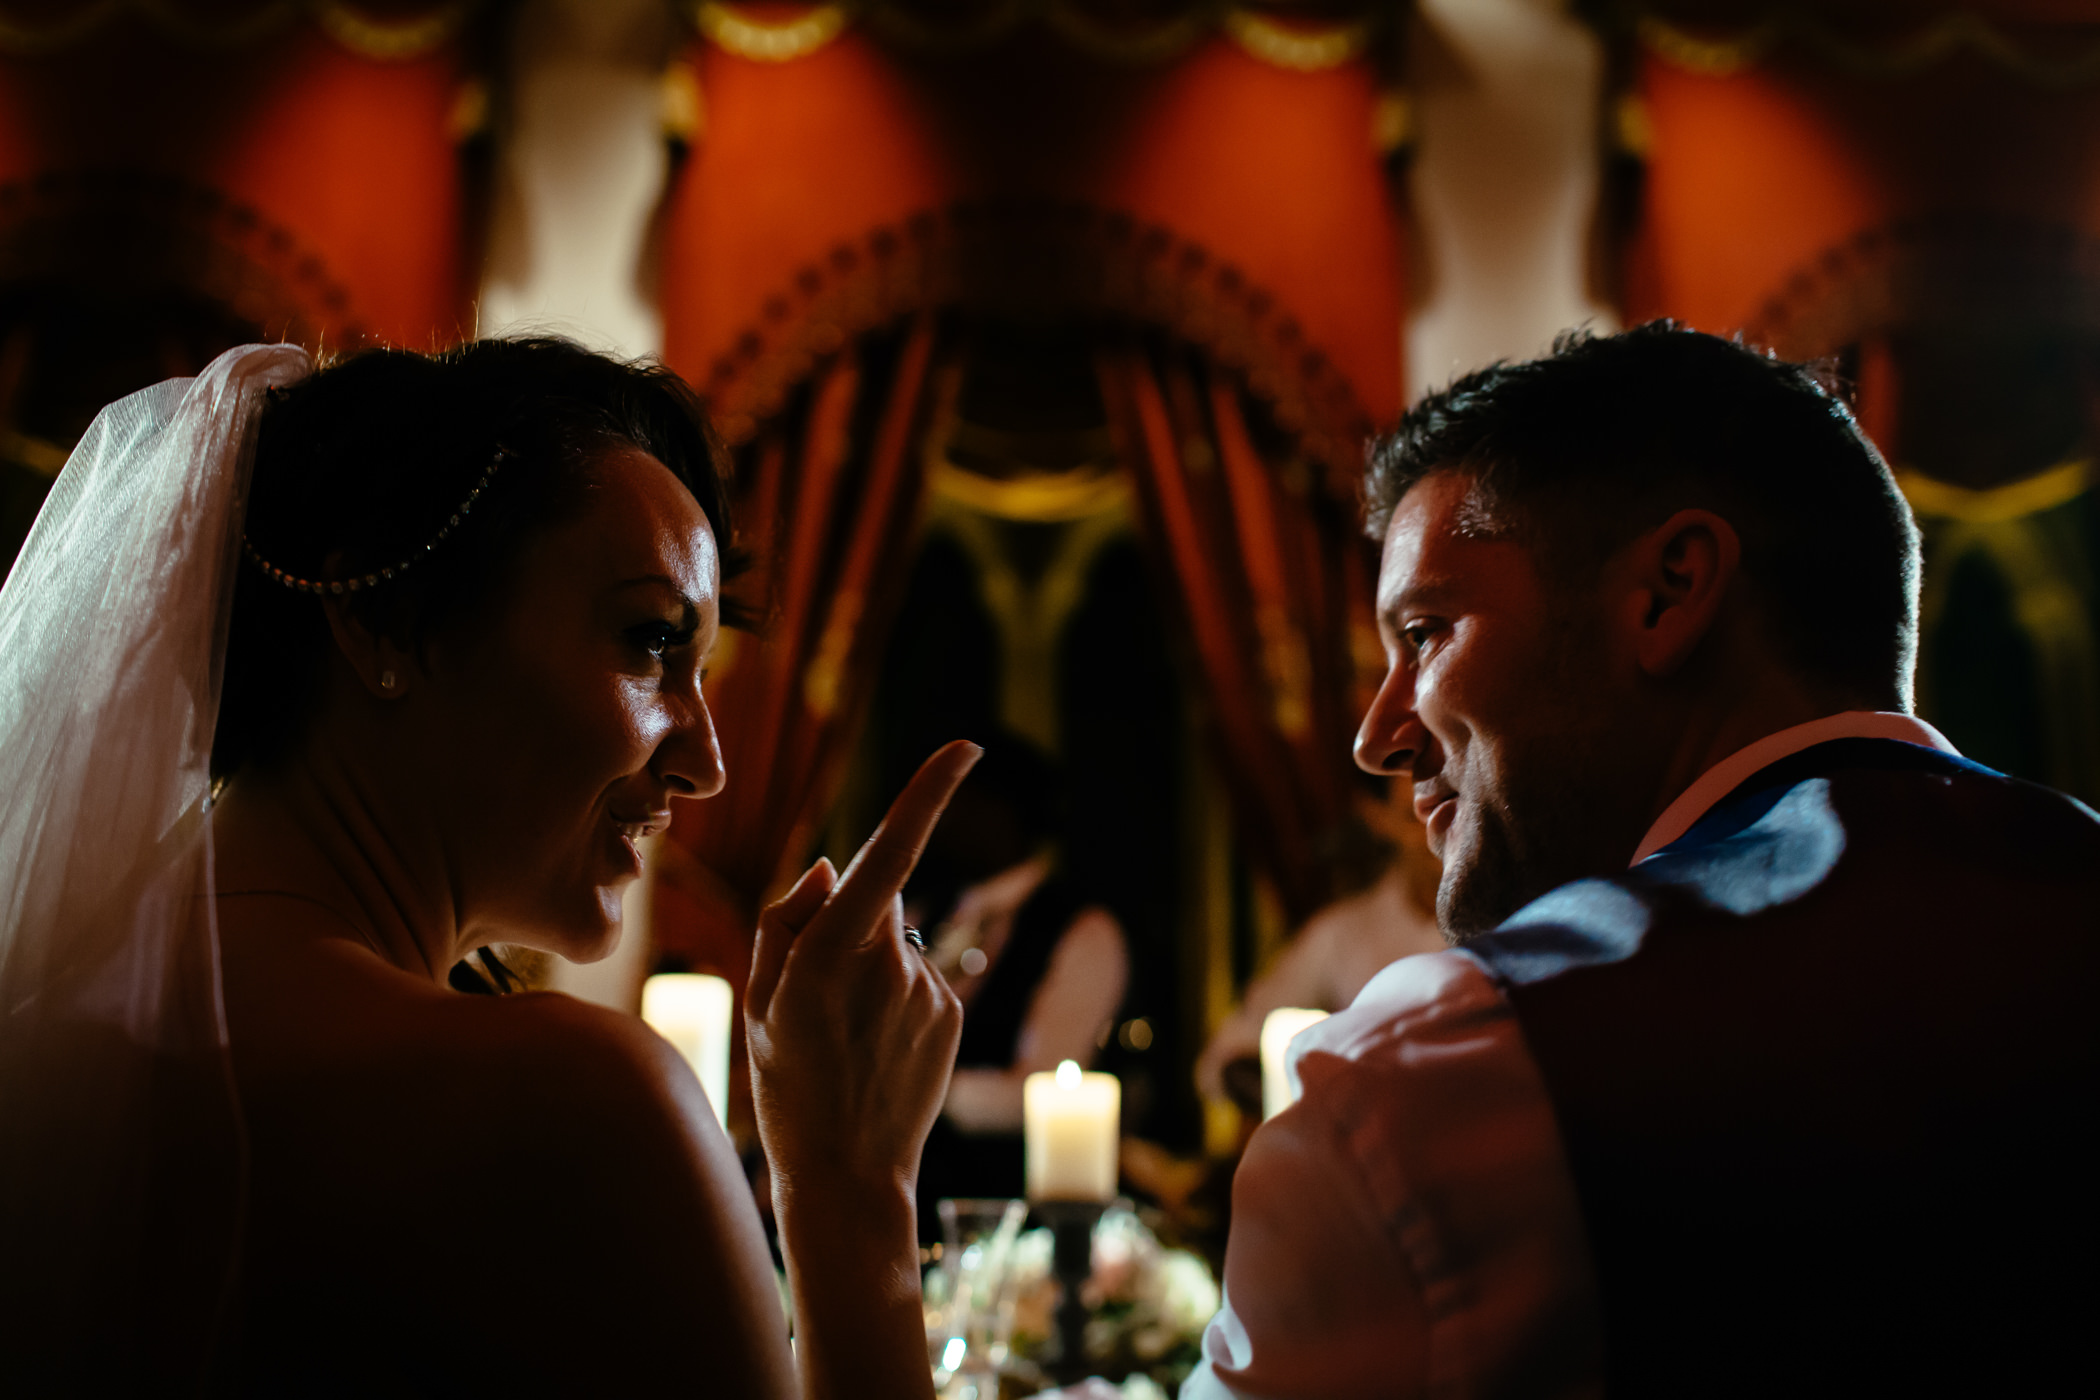 Ant & Louise NYE Peckforton Castle Wedding- Sansom Photography-49